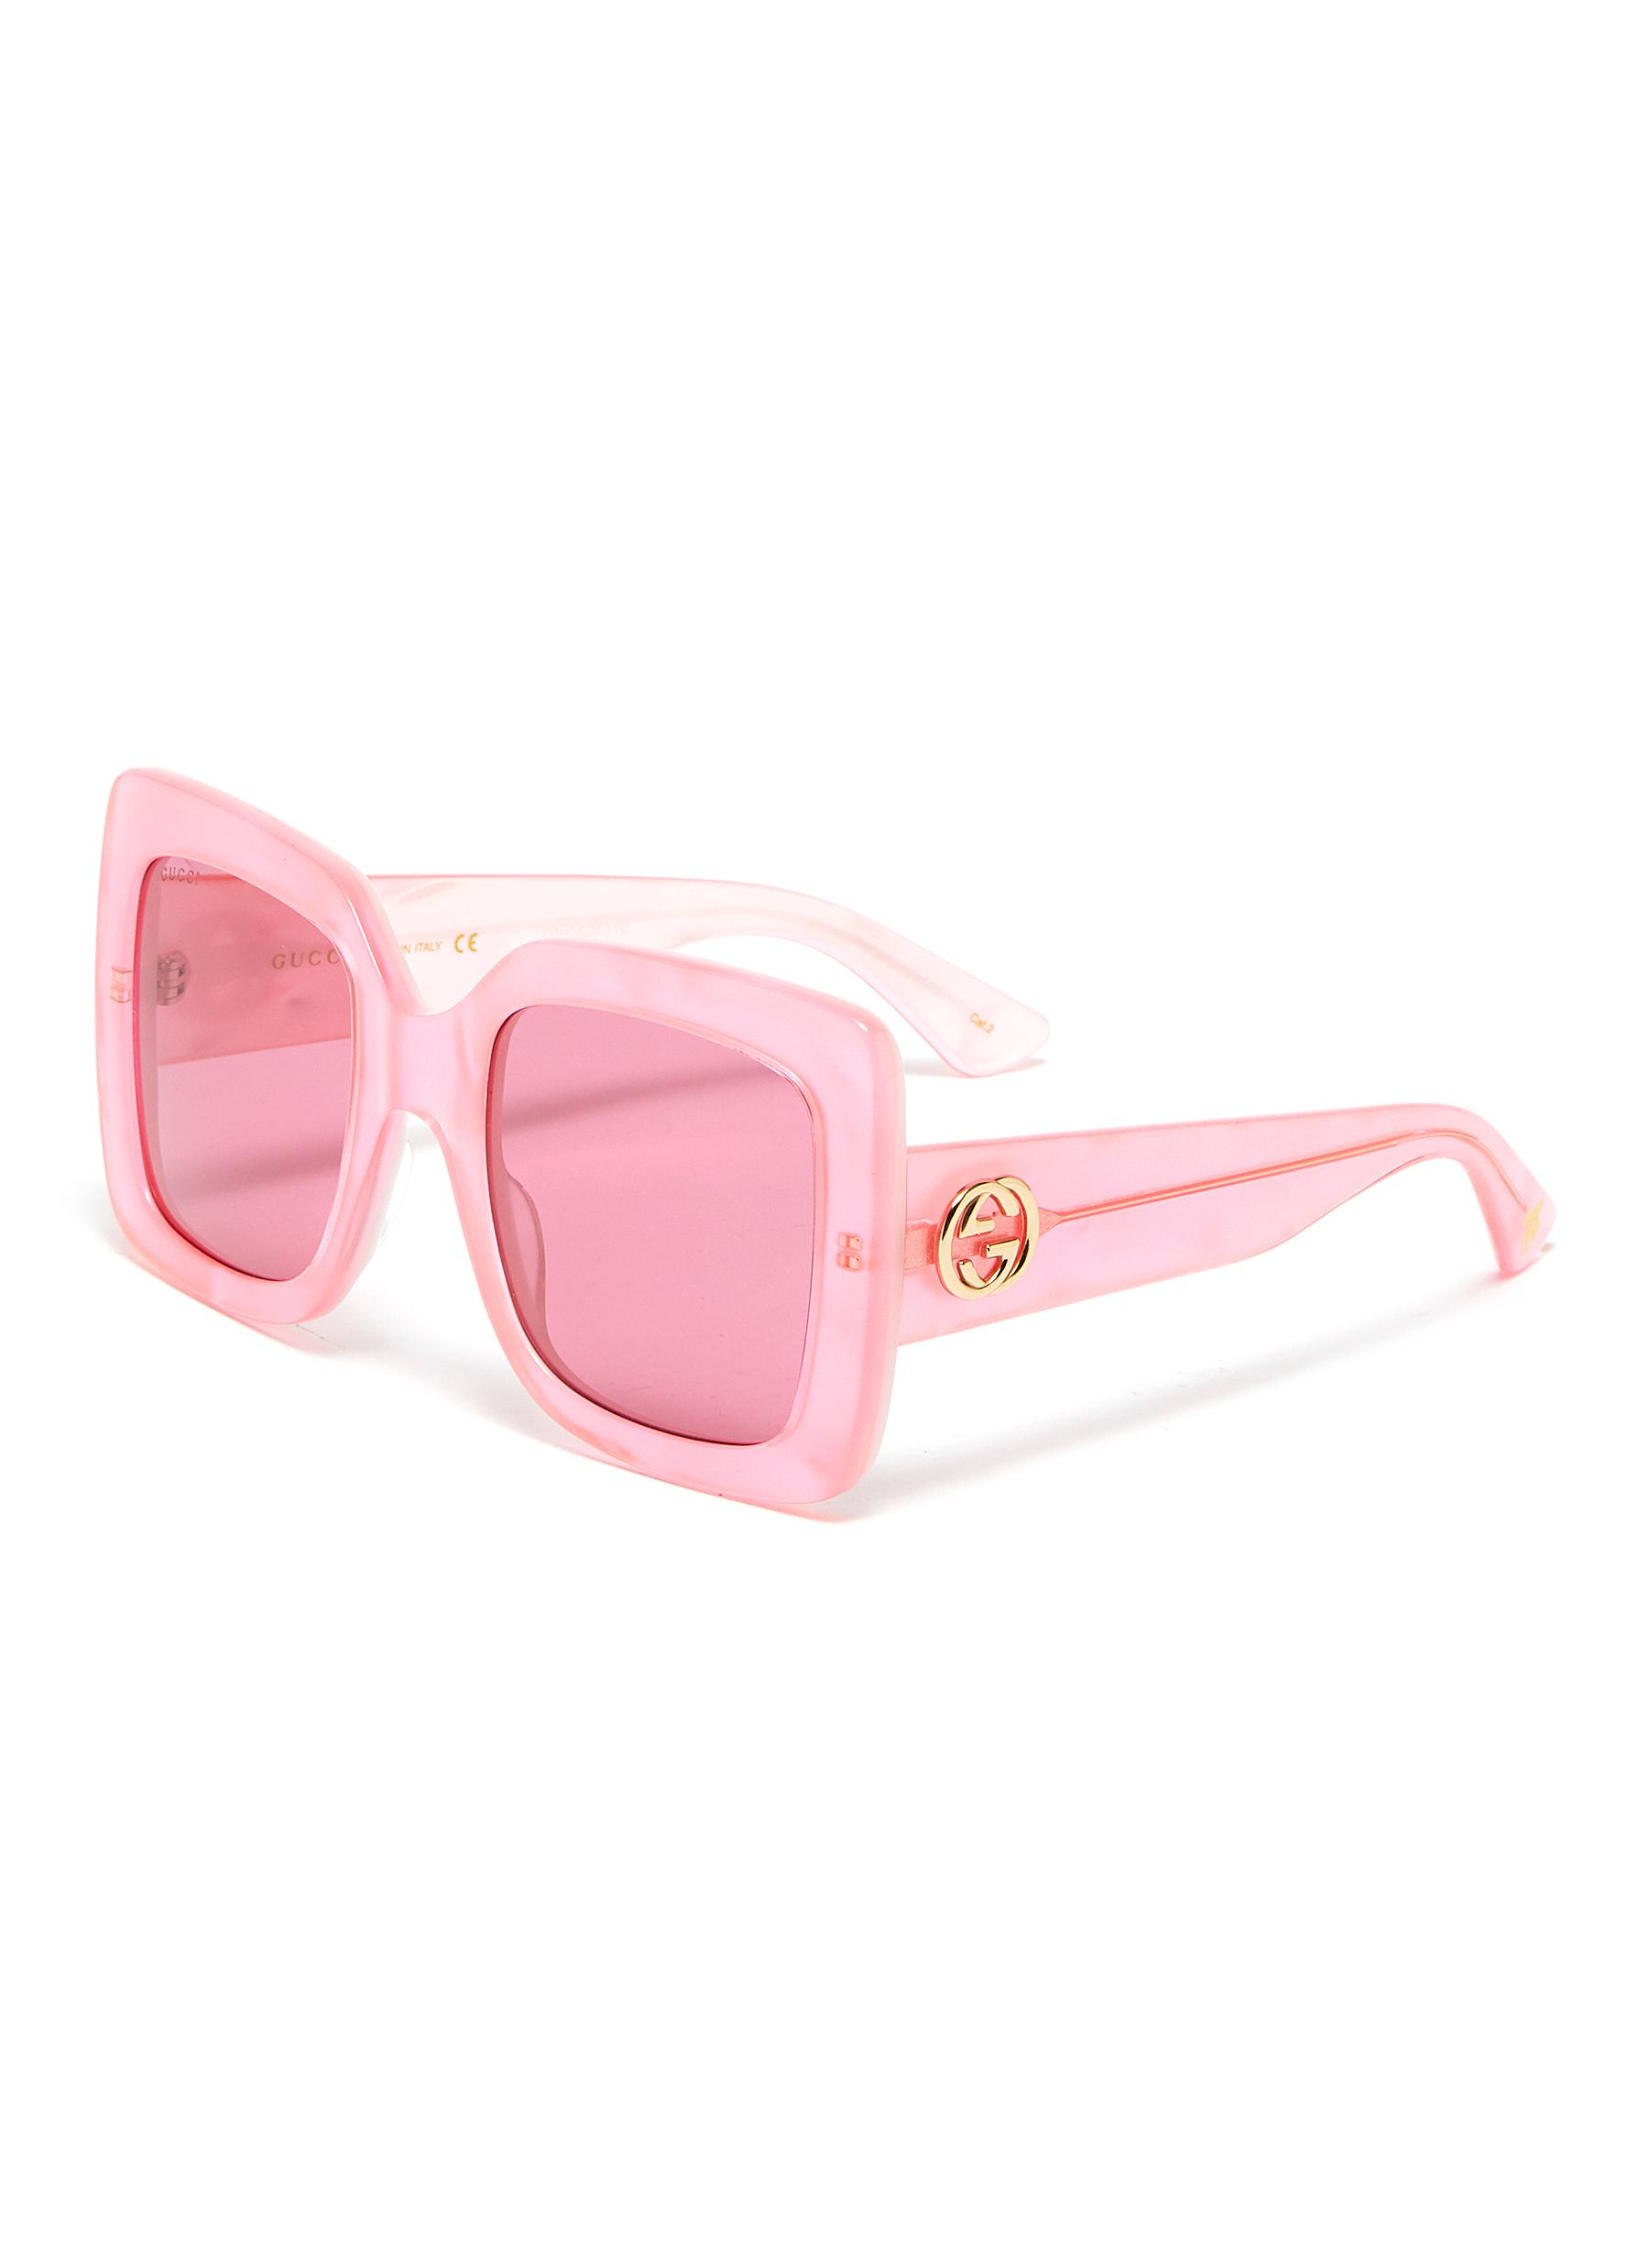 bfc32e3f9 GUCCI | Acetate oversized square sunglasses | Women | Lane Crawford